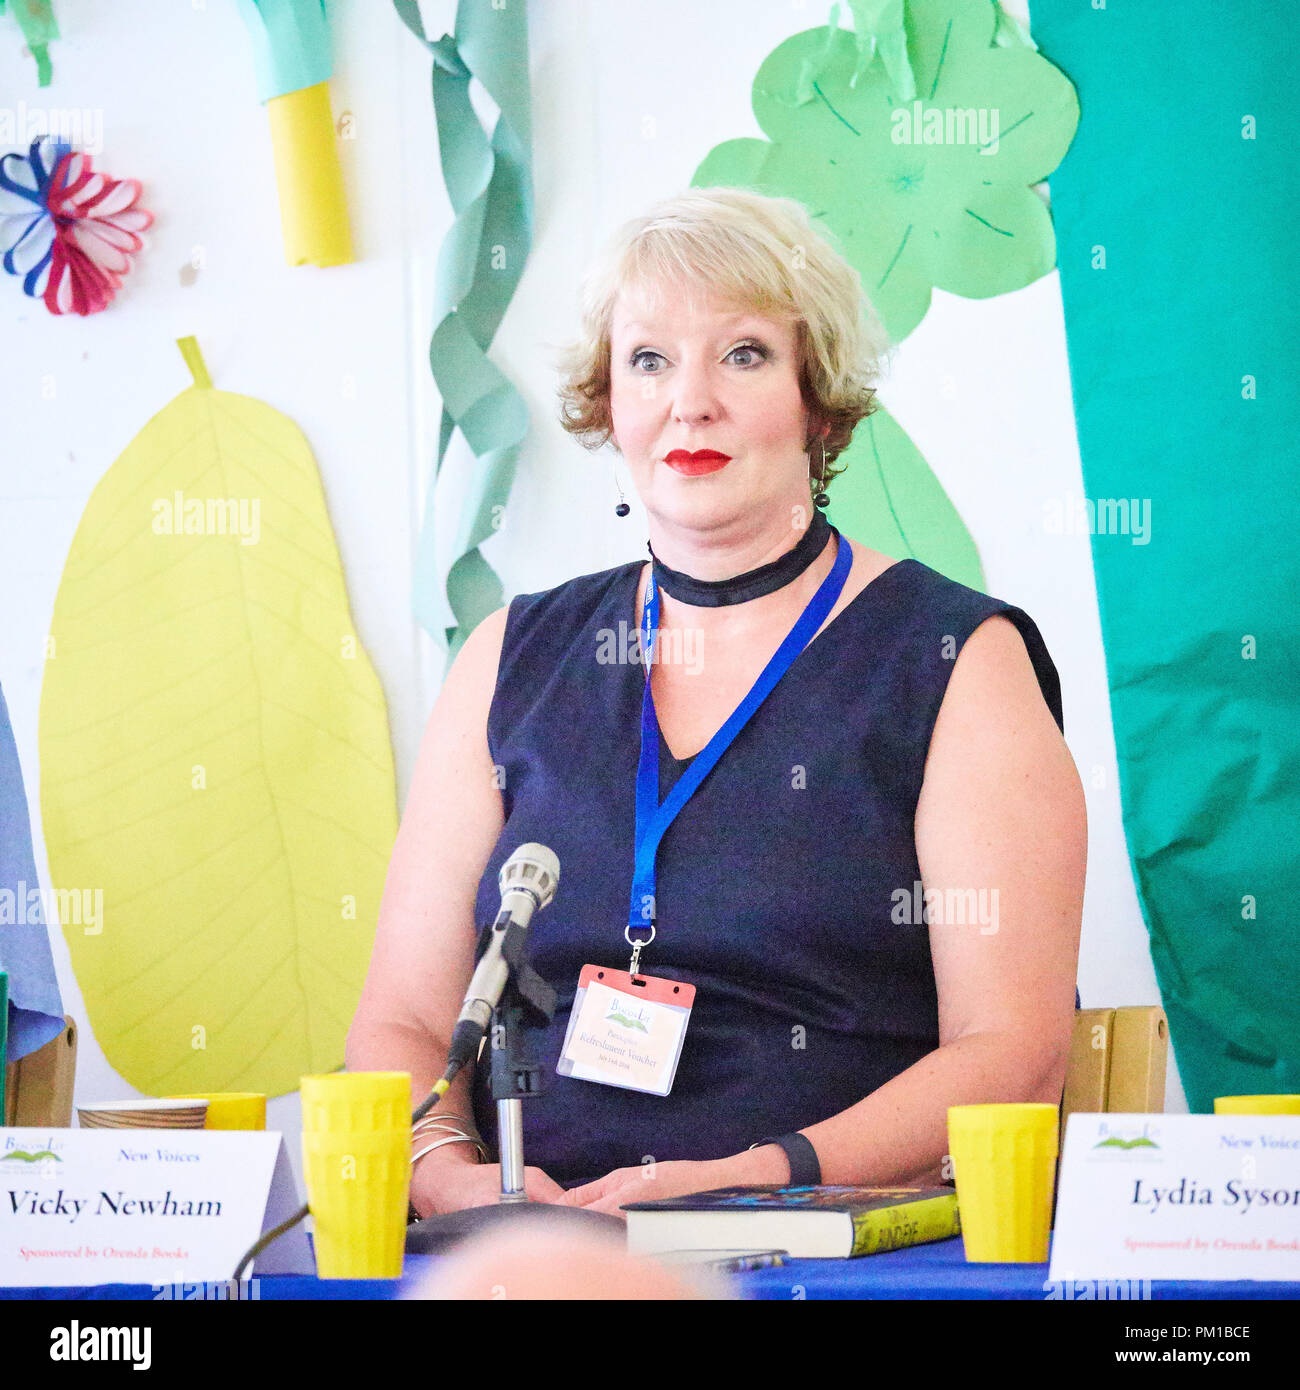 Author Vicky Newham on the New Voices panel at Beaconlit book festival in Ivinghoe - Stock Image